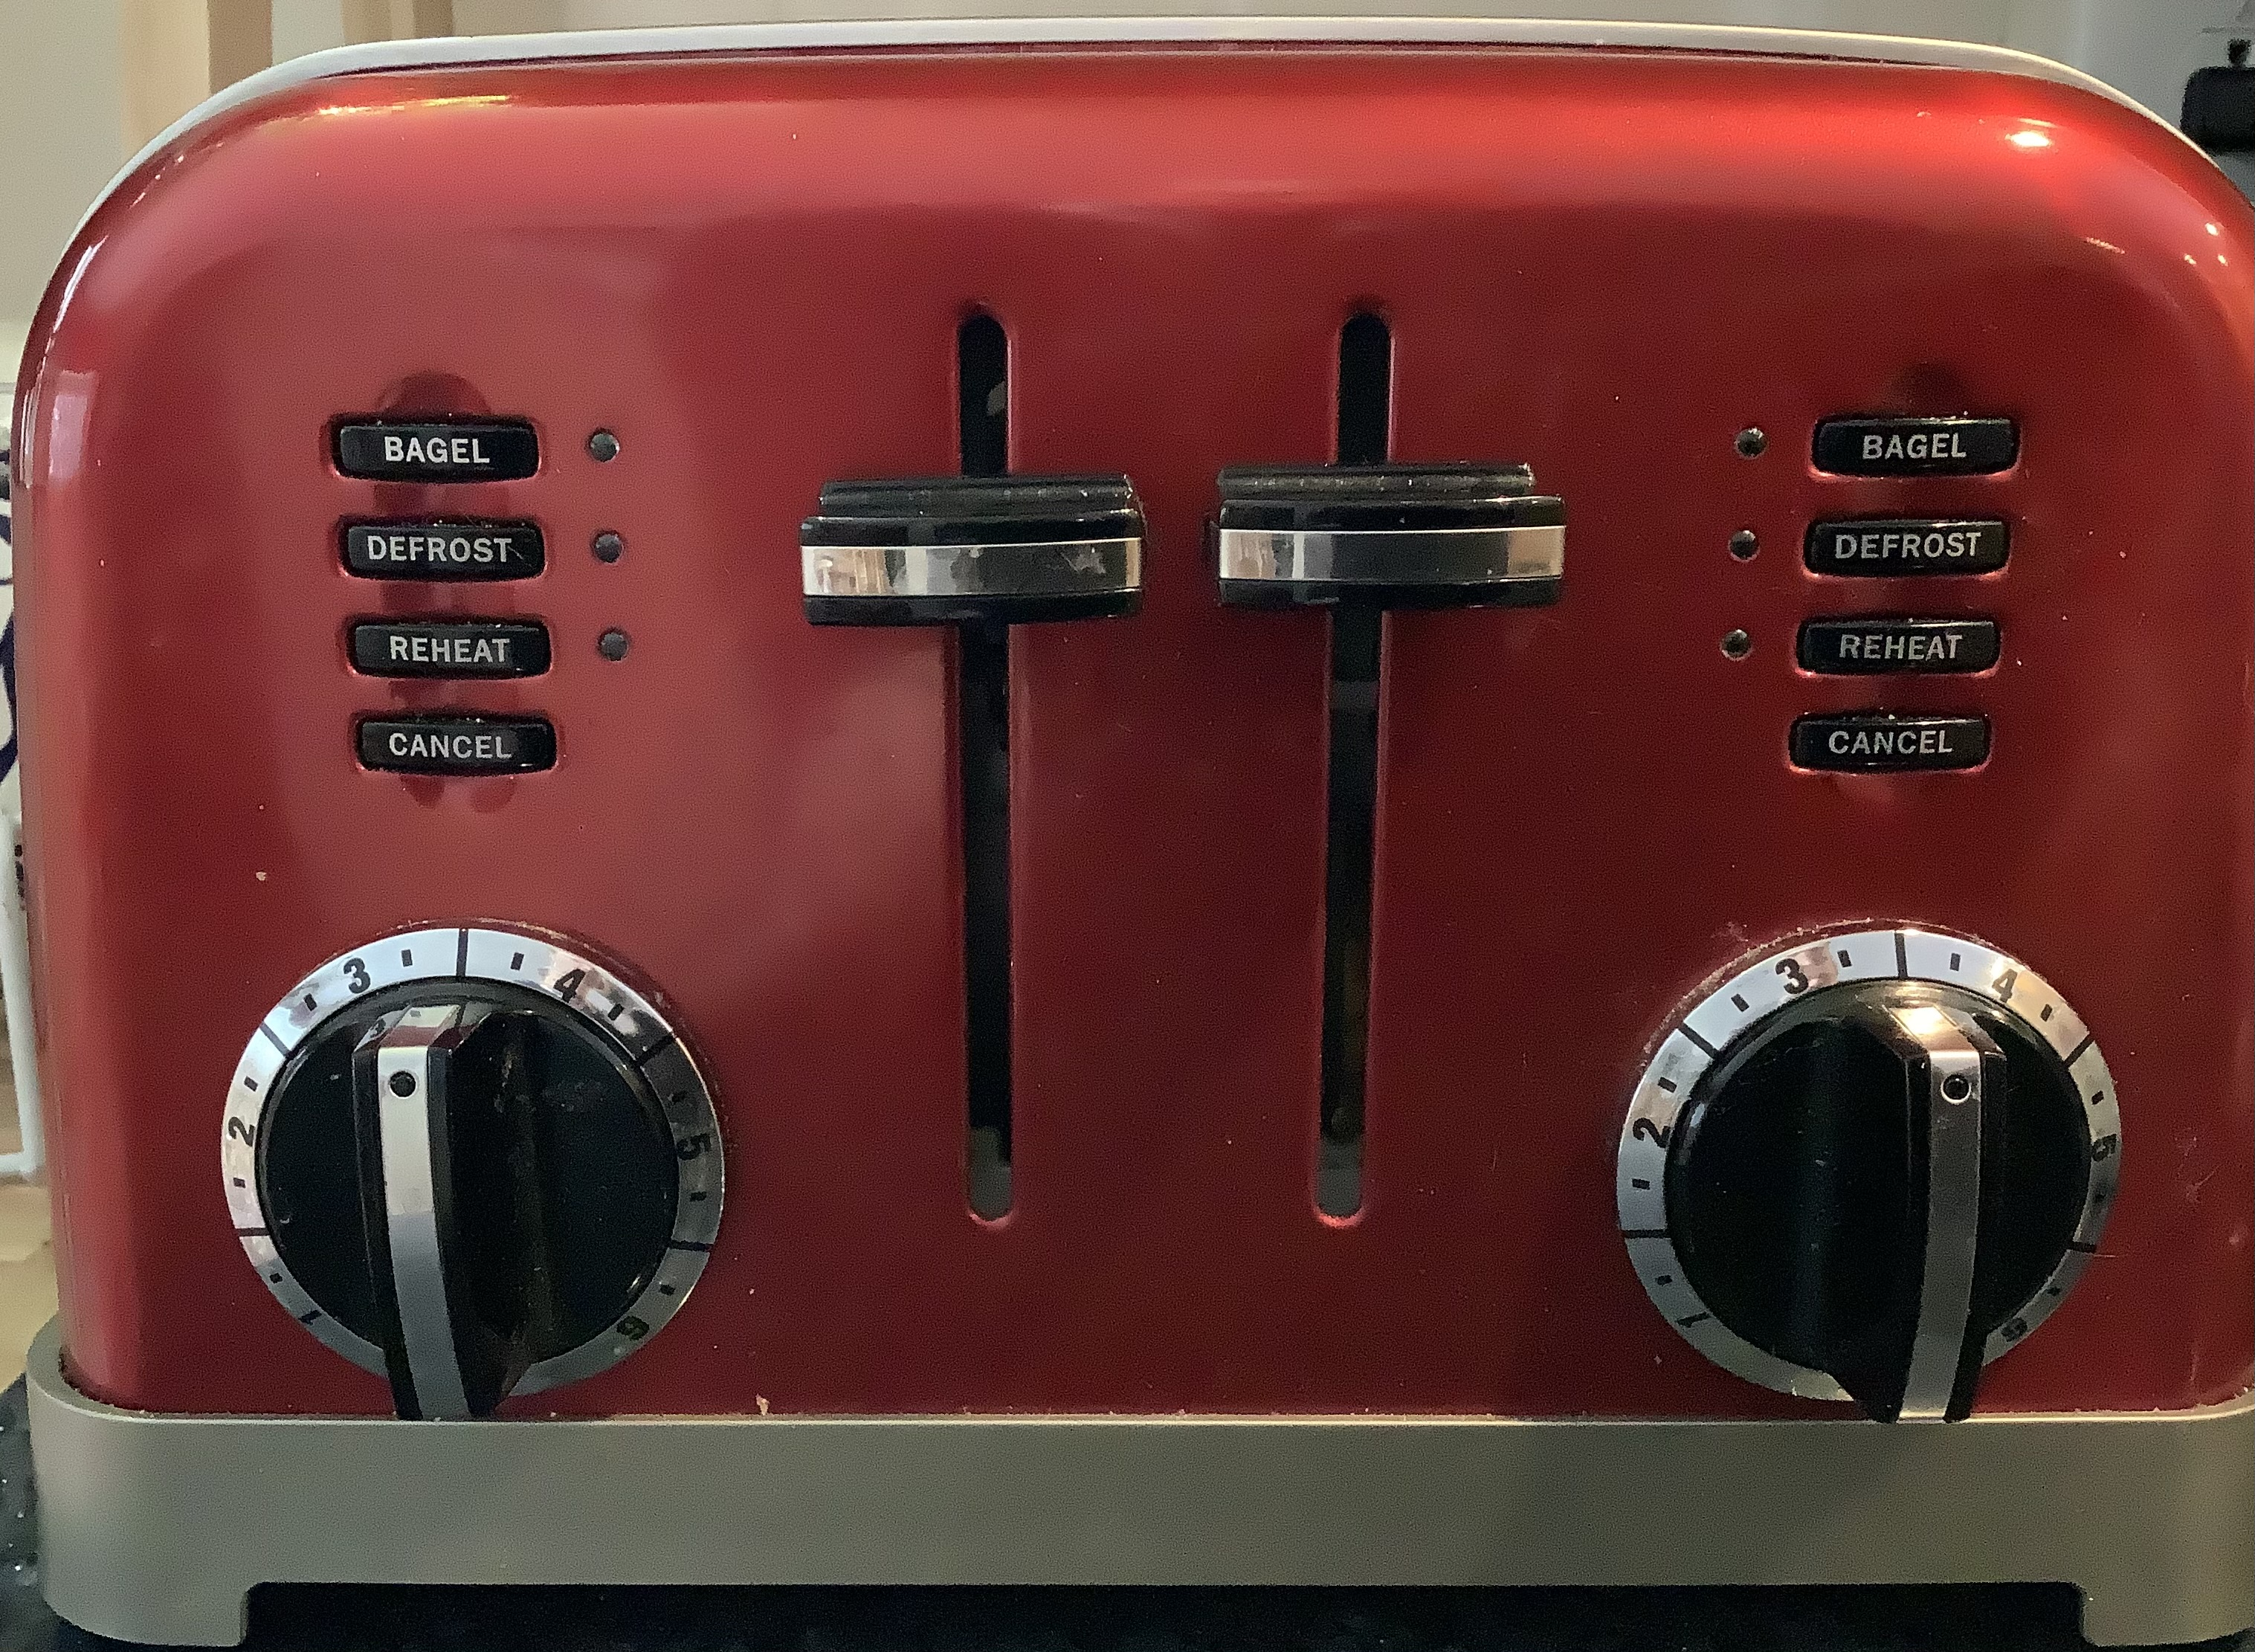 My toaster controls are confusing without glasses